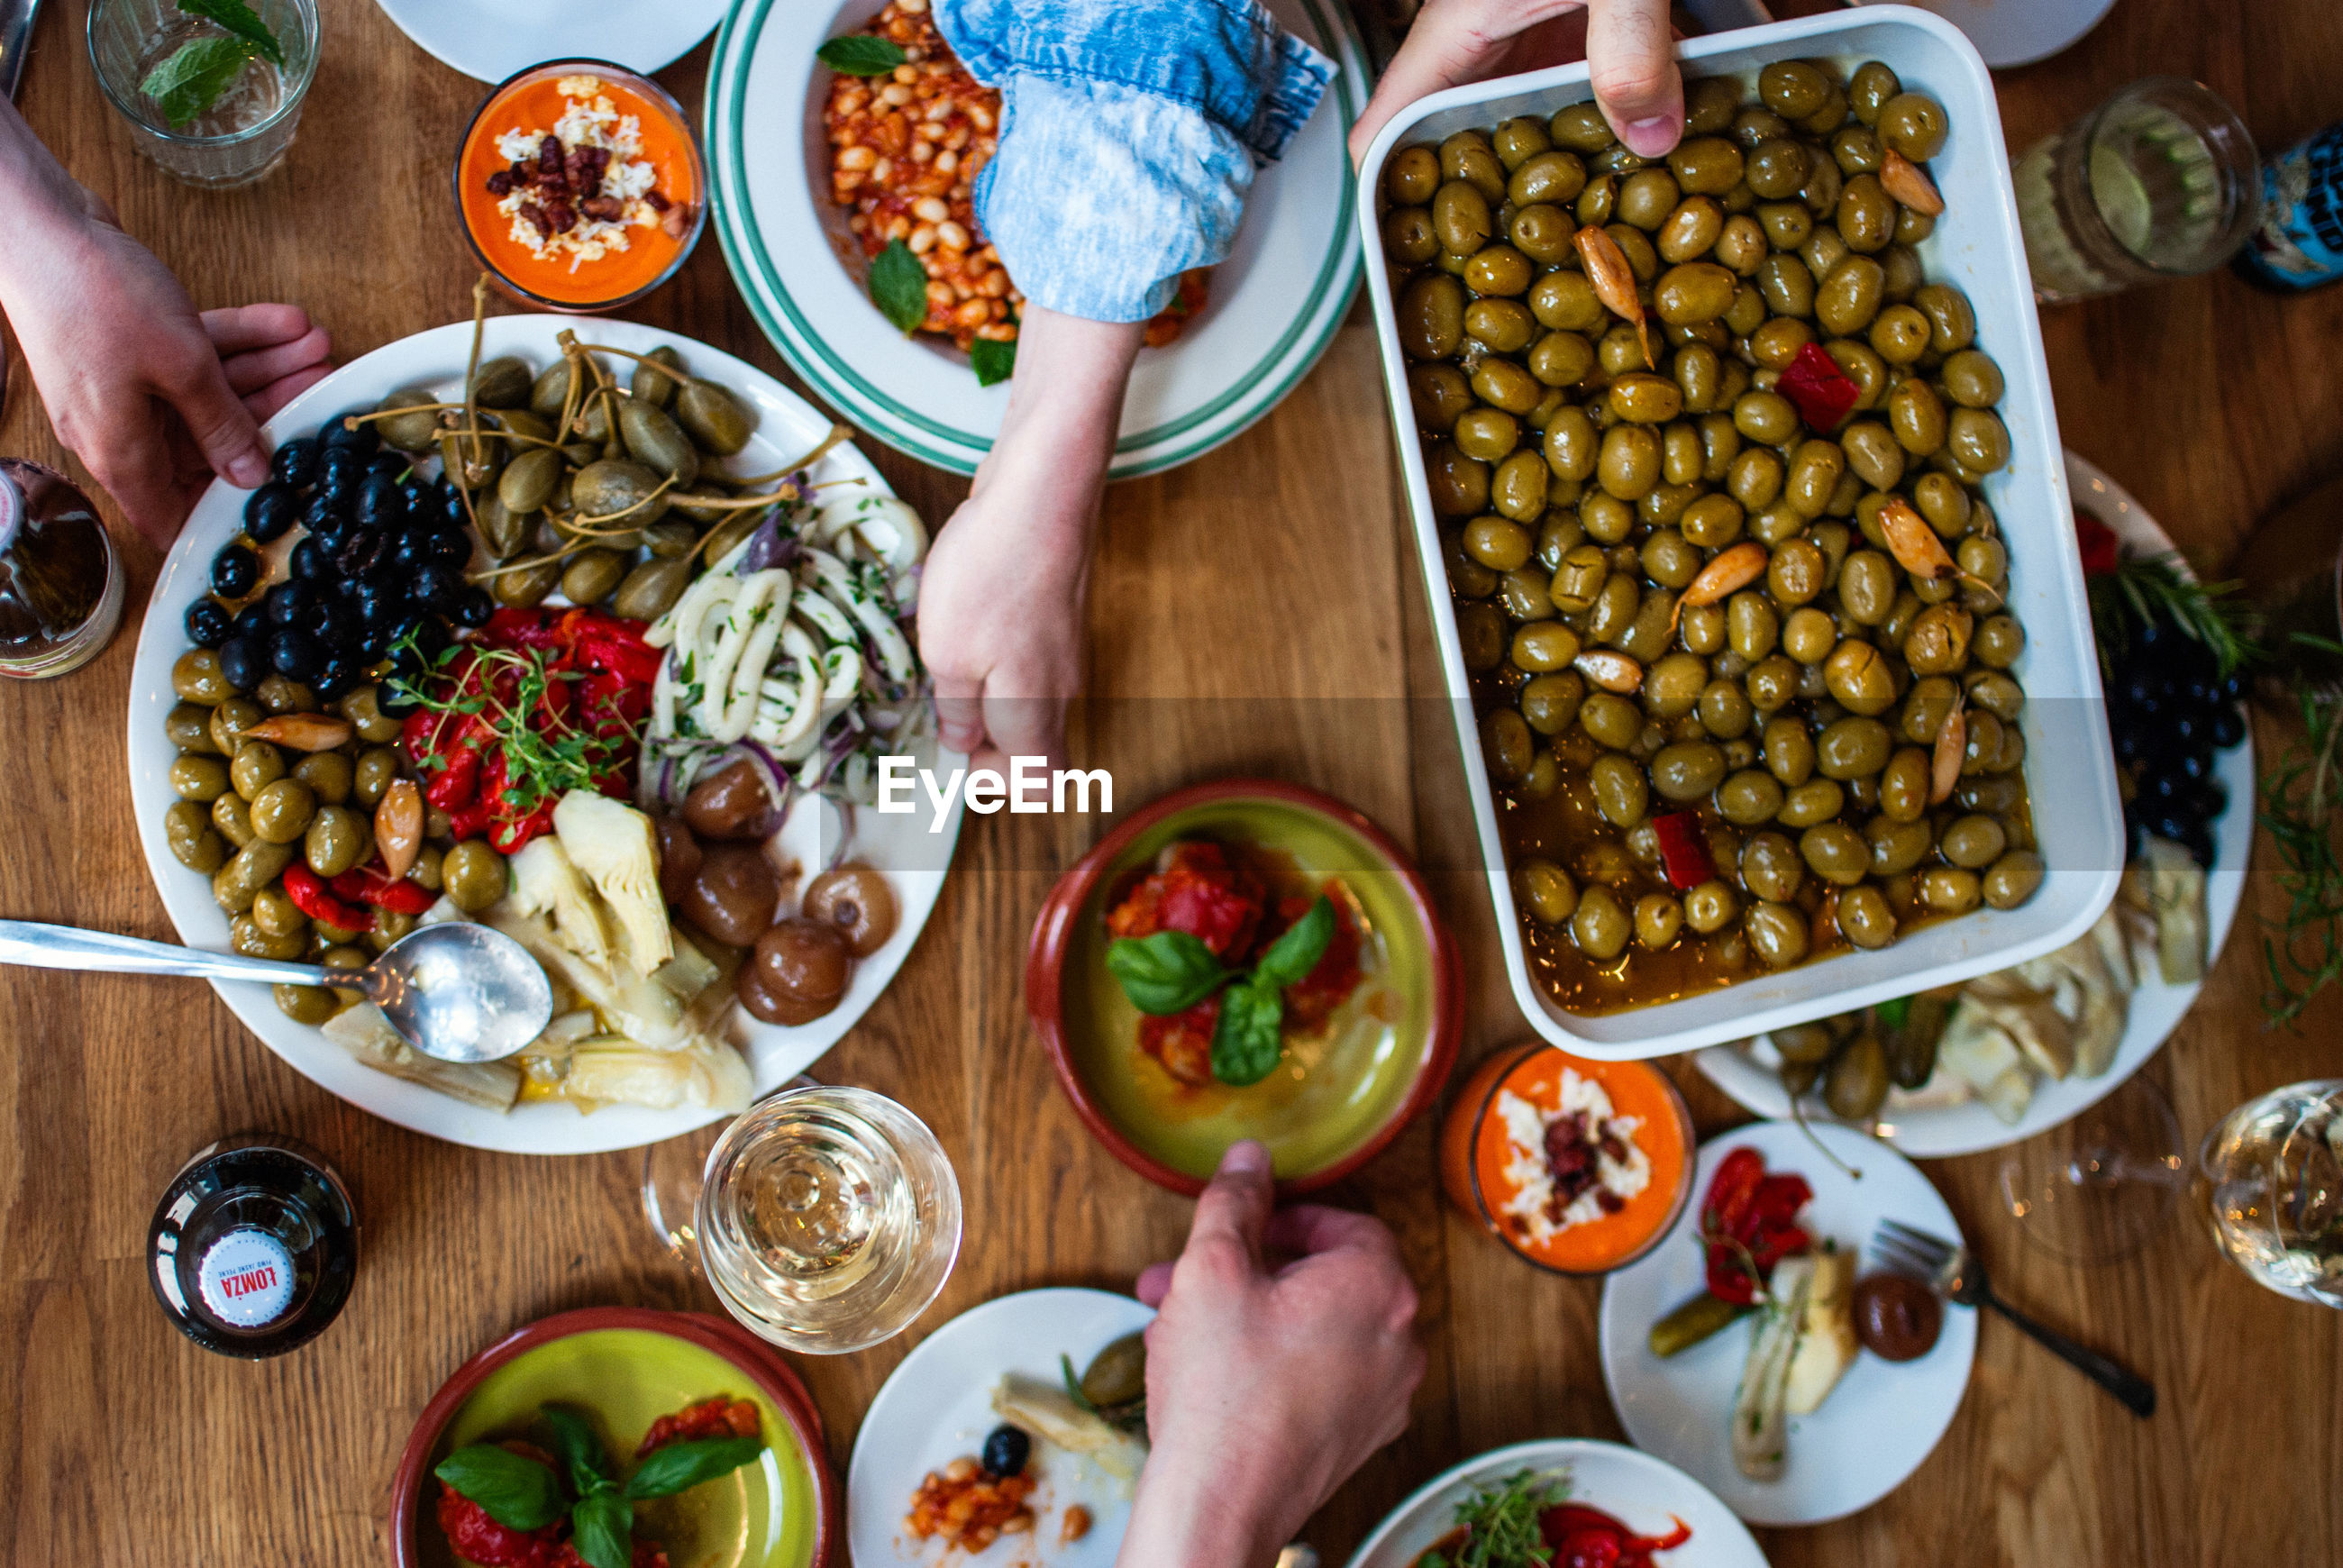 Cropped image of hands with food served on table